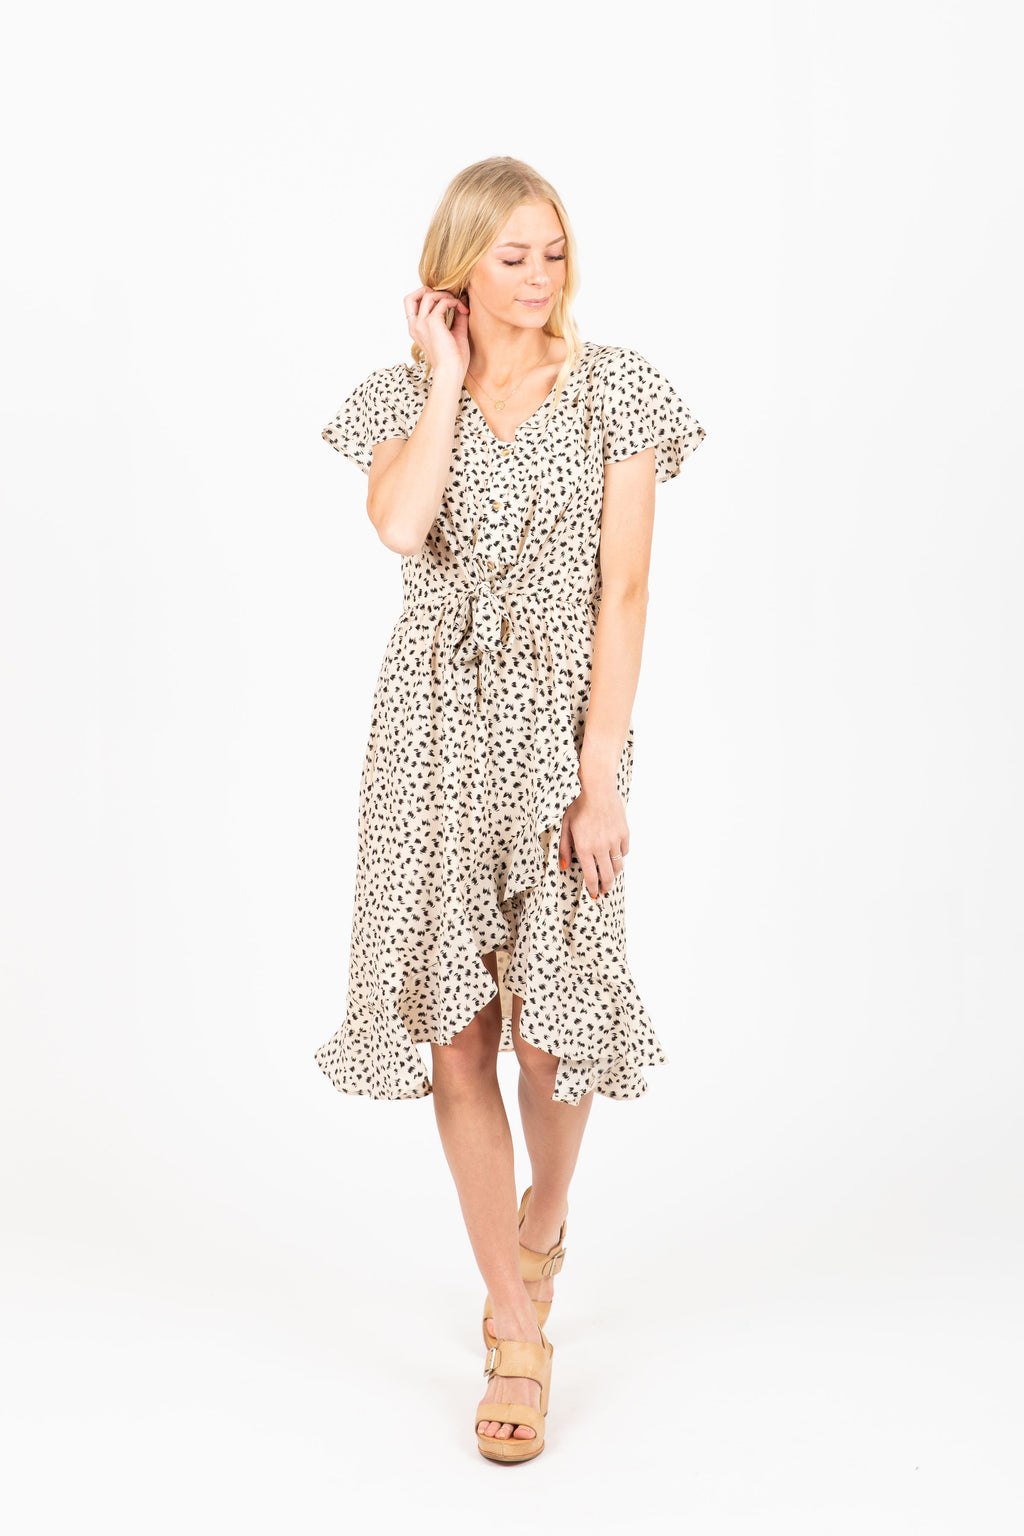 Piper & Scoot: The Abigail Tie Front Ruffle Dress in Animal Print